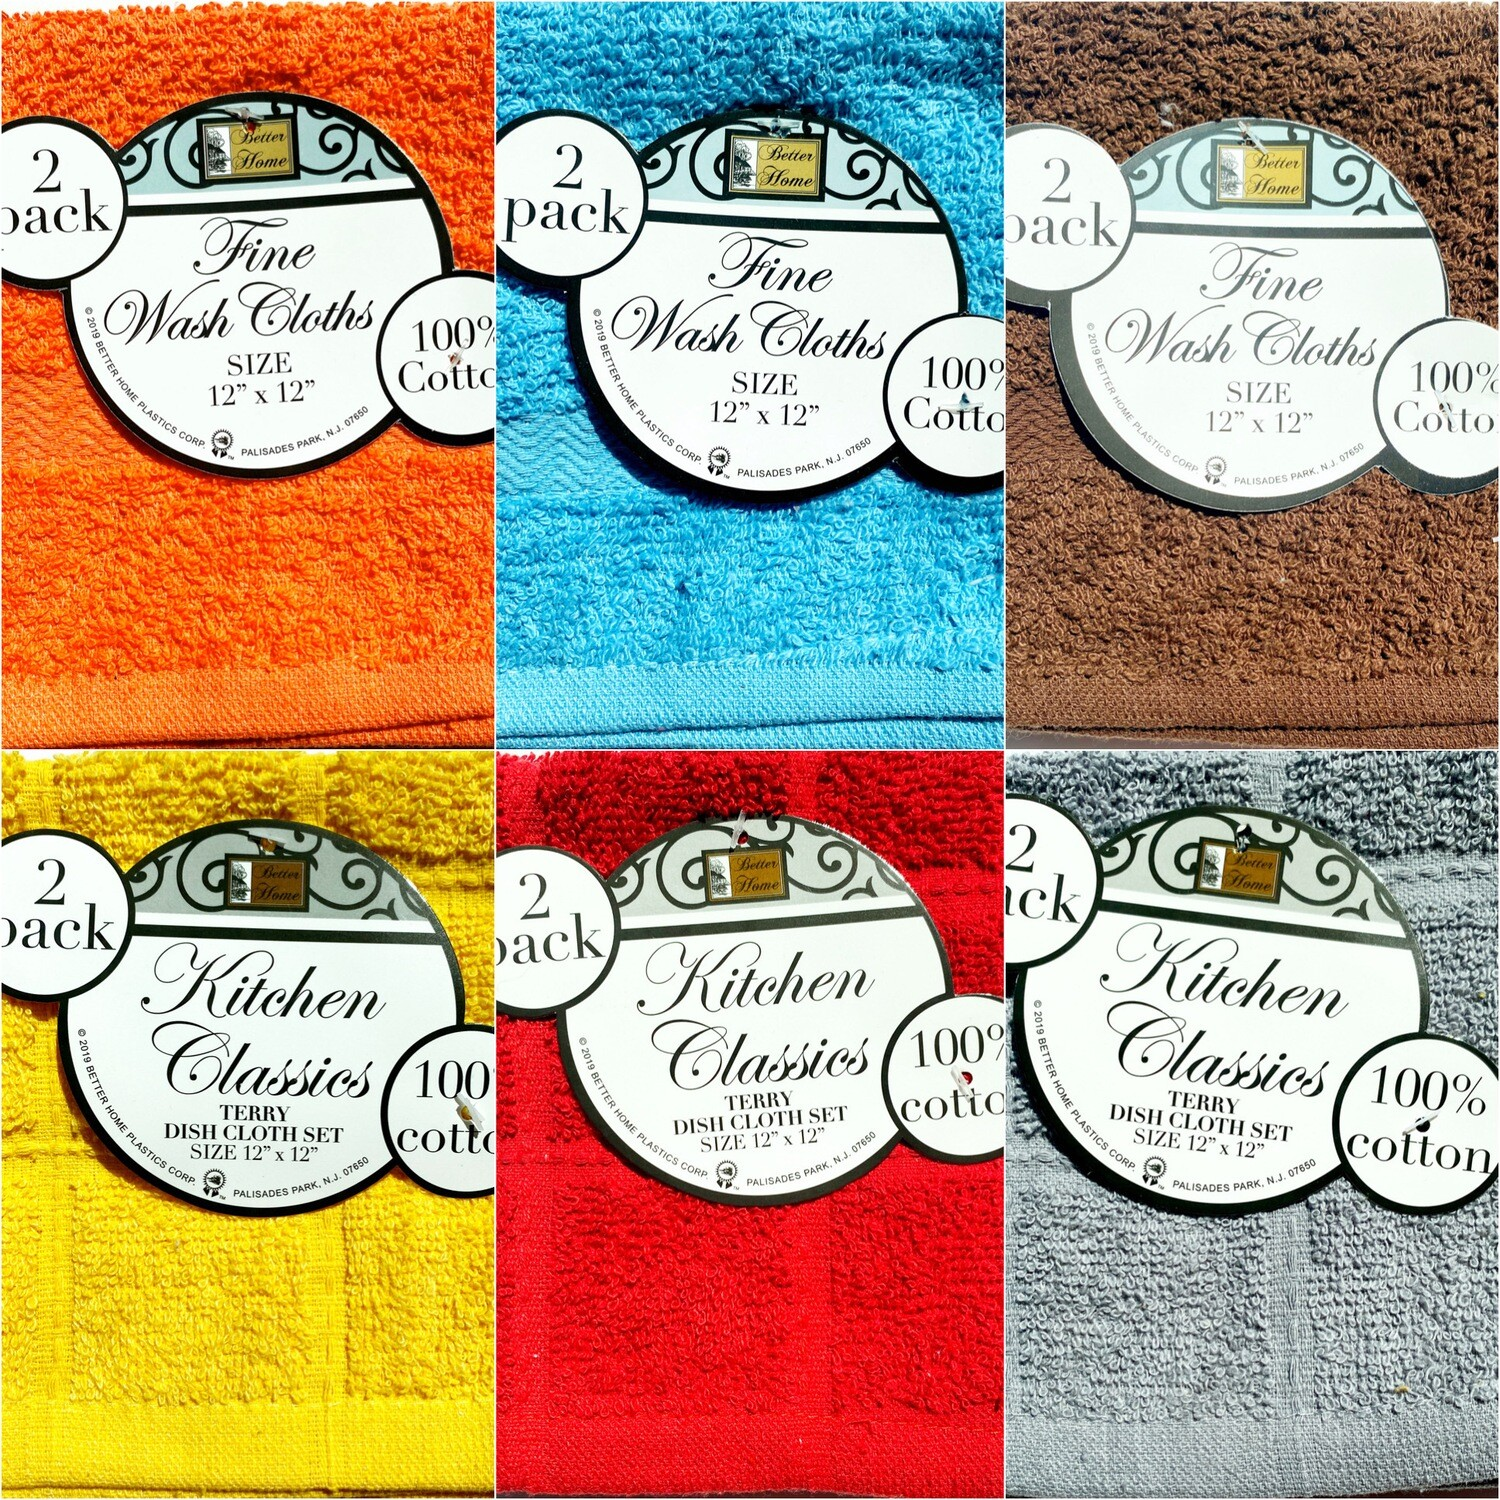 Deluxe Wash Cloth Set: Solid Colors 2 pack